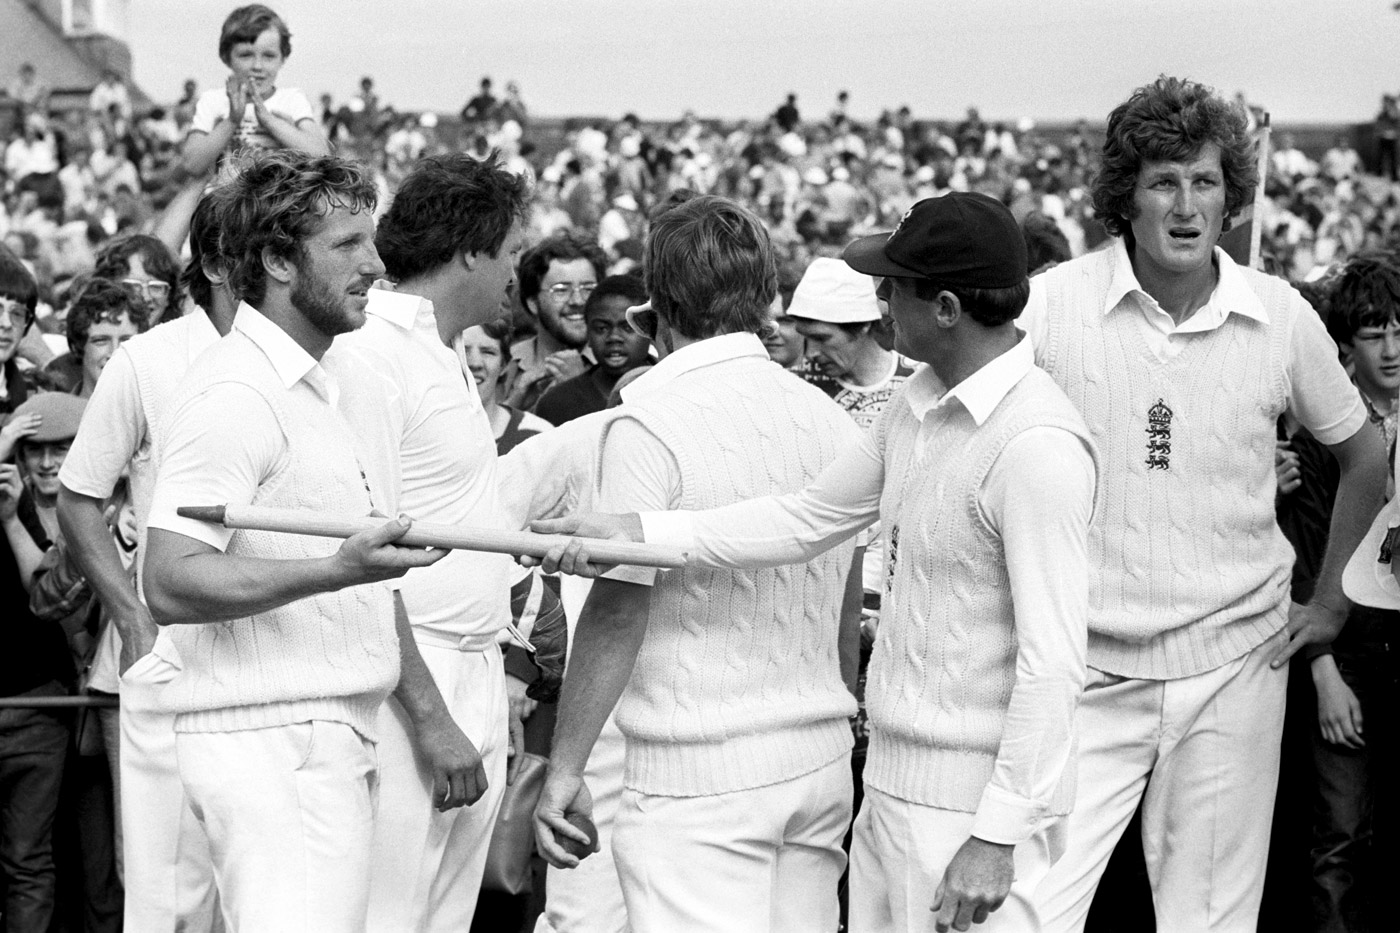 Back to work: the England players had virtually no celebrations after the famous win as several left to play domestic games the next day